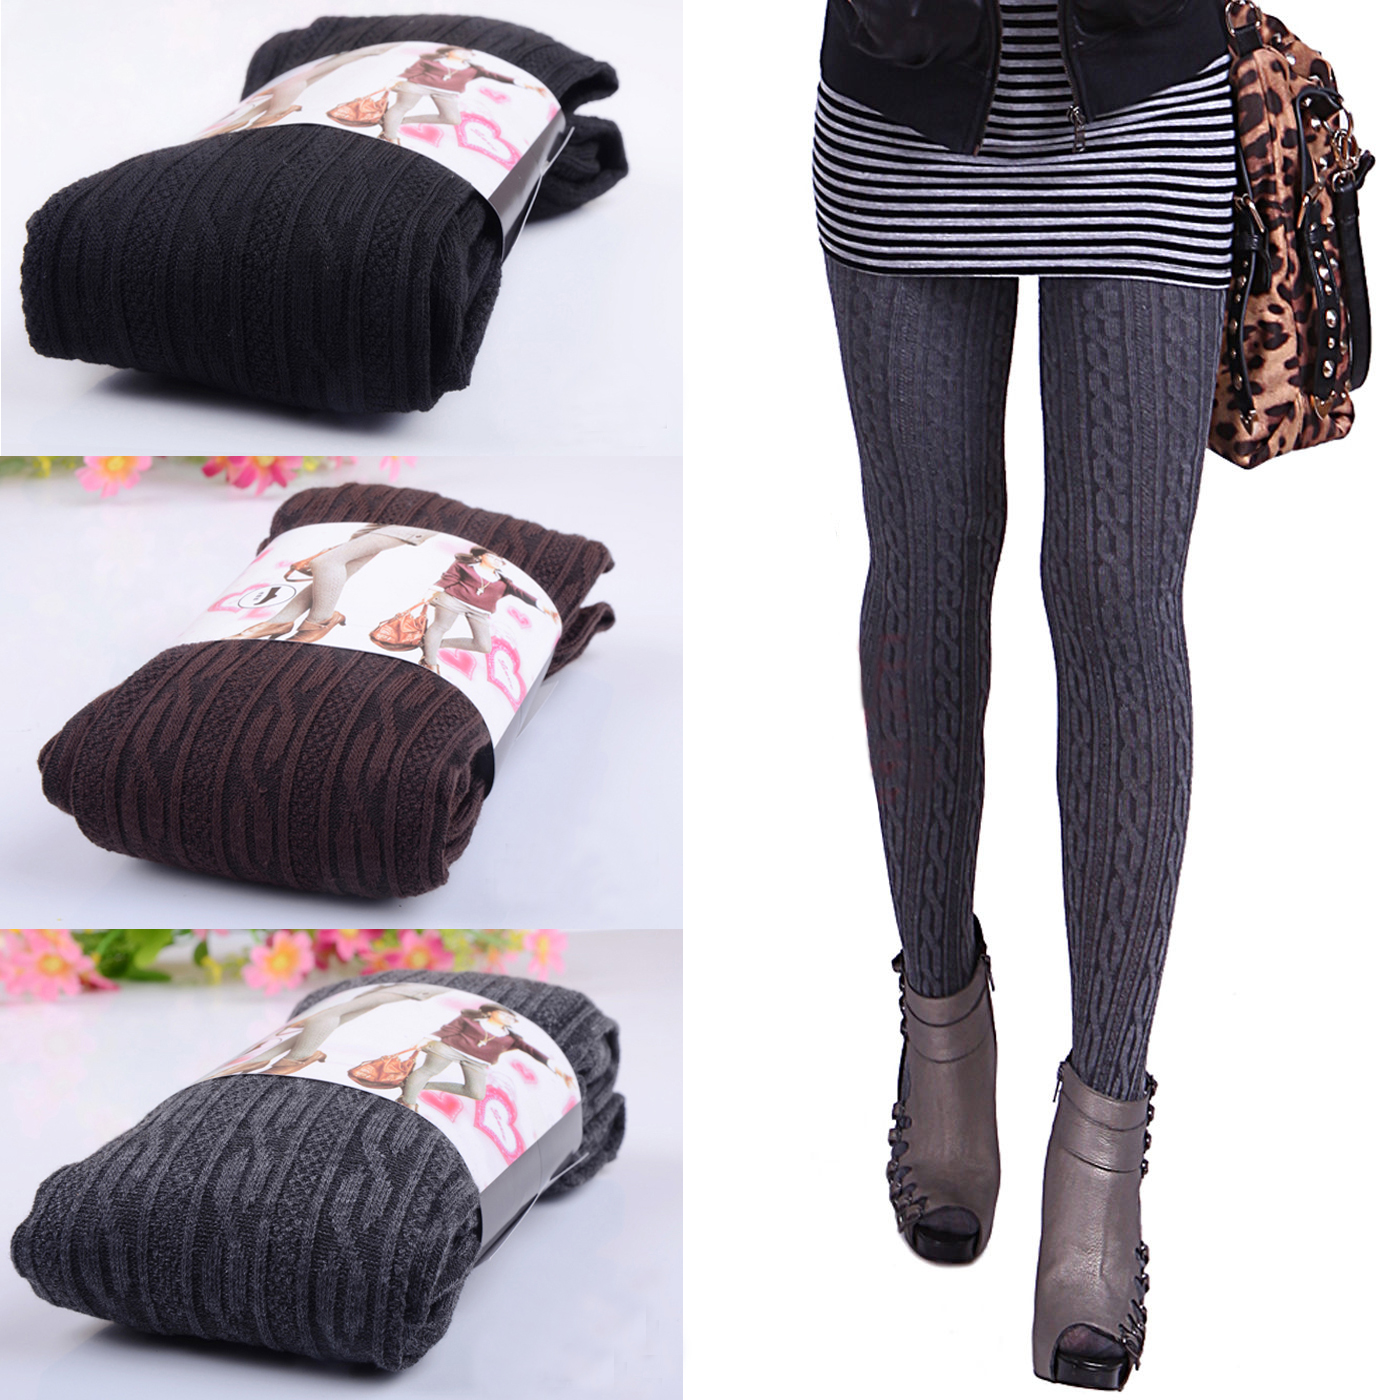 womens comfortable winter fashion footed warm cotton stockings tights ebay. Black Bedroom Furniture Sets. Home Design Ideas